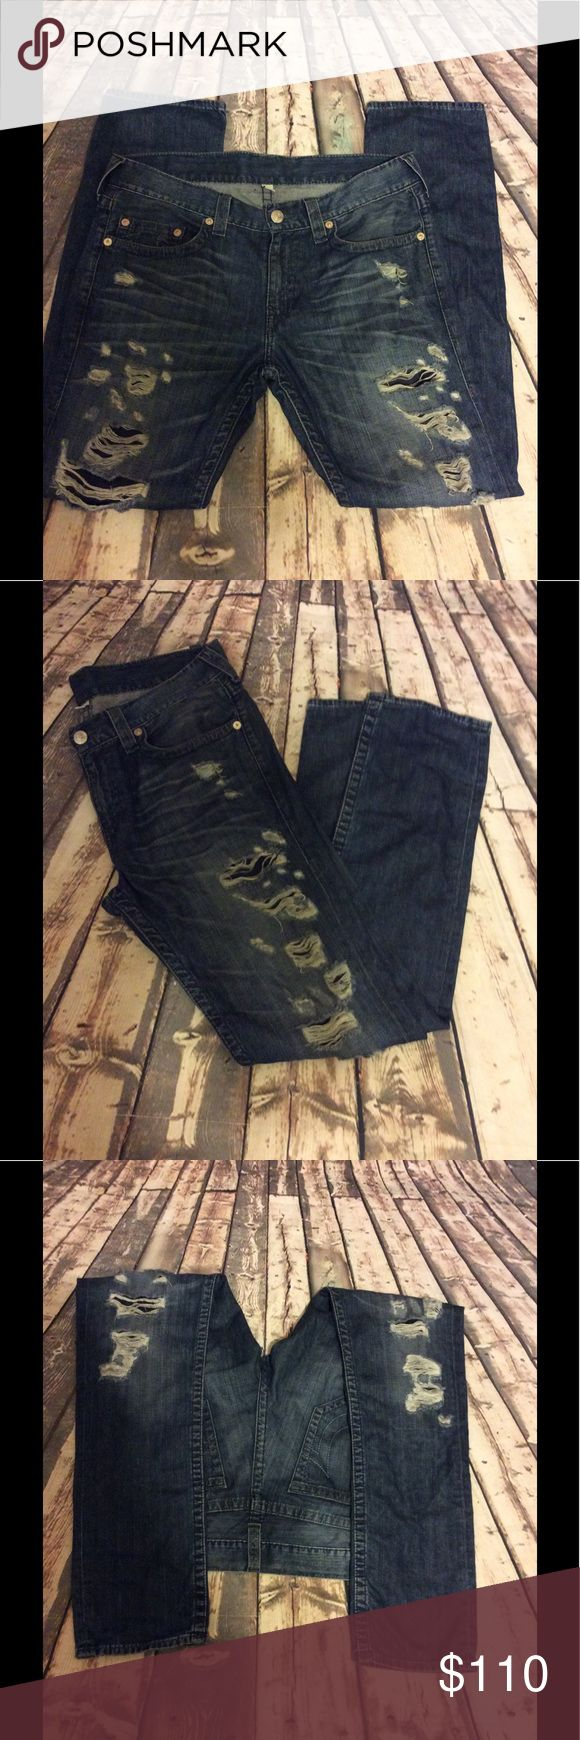 "True Religion distressed jeans size 34(men) True Religion distressed jeans size 34(men)  with pockets & belt loops approx 18"" waist approx 32"" inseam approx 41"" length approx 7"" pants cuff approx 10.5"" EXCELLENT CONDITION True Religion Jeans Skinny"